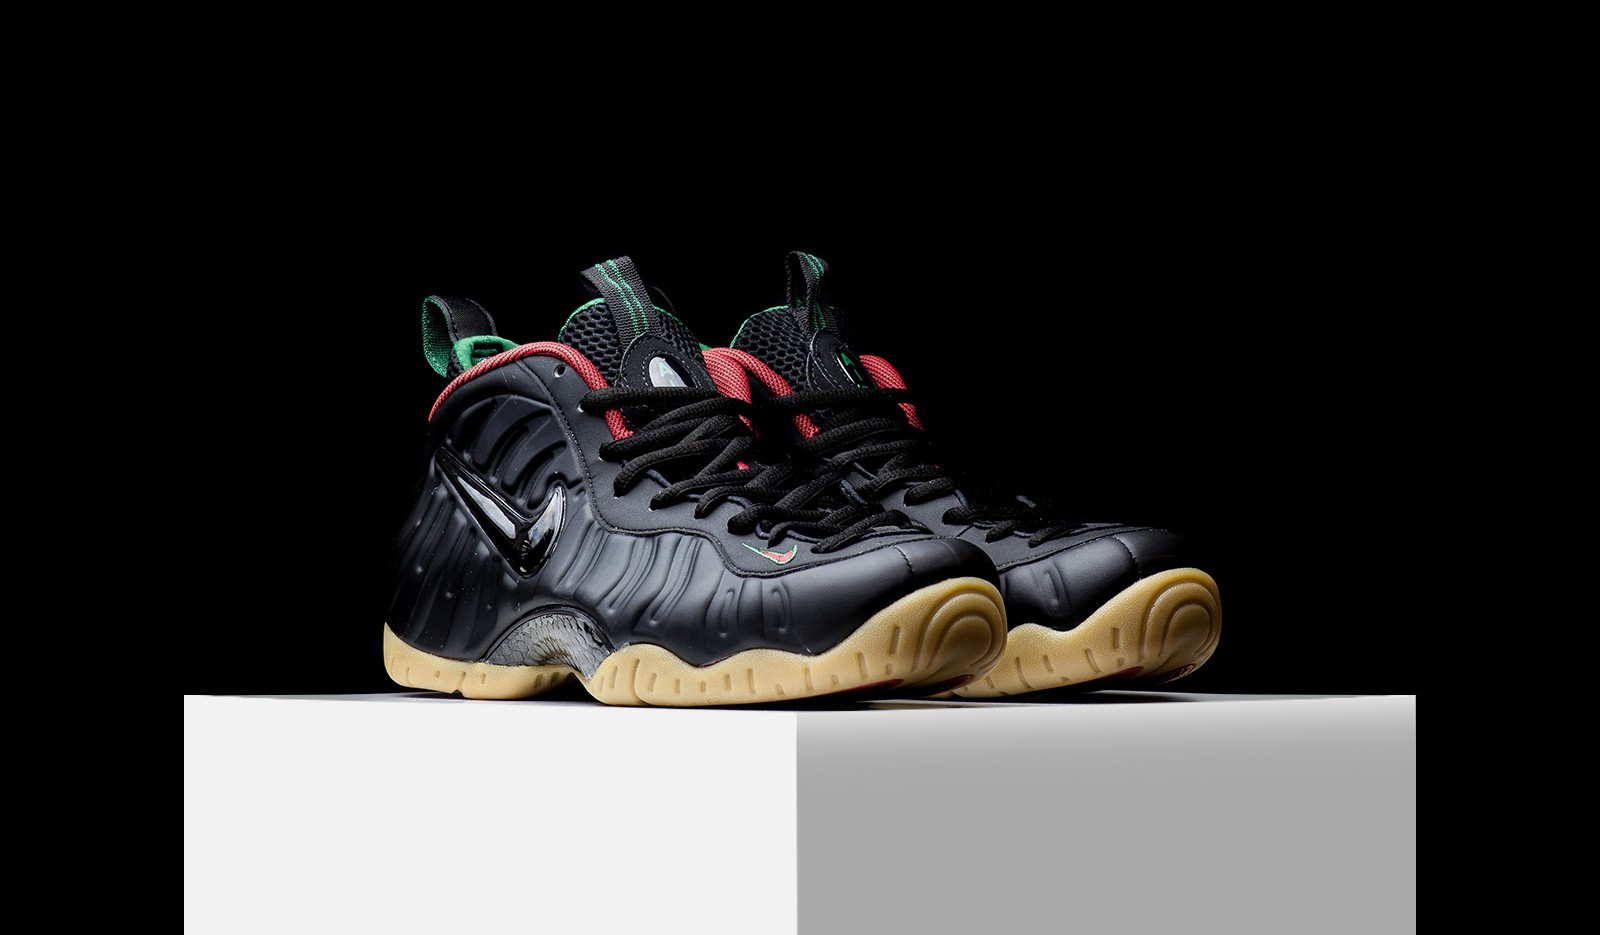 2ad89a65807 Nike Air Foamposite Pro  Gucci  - Available Now - WearTesters